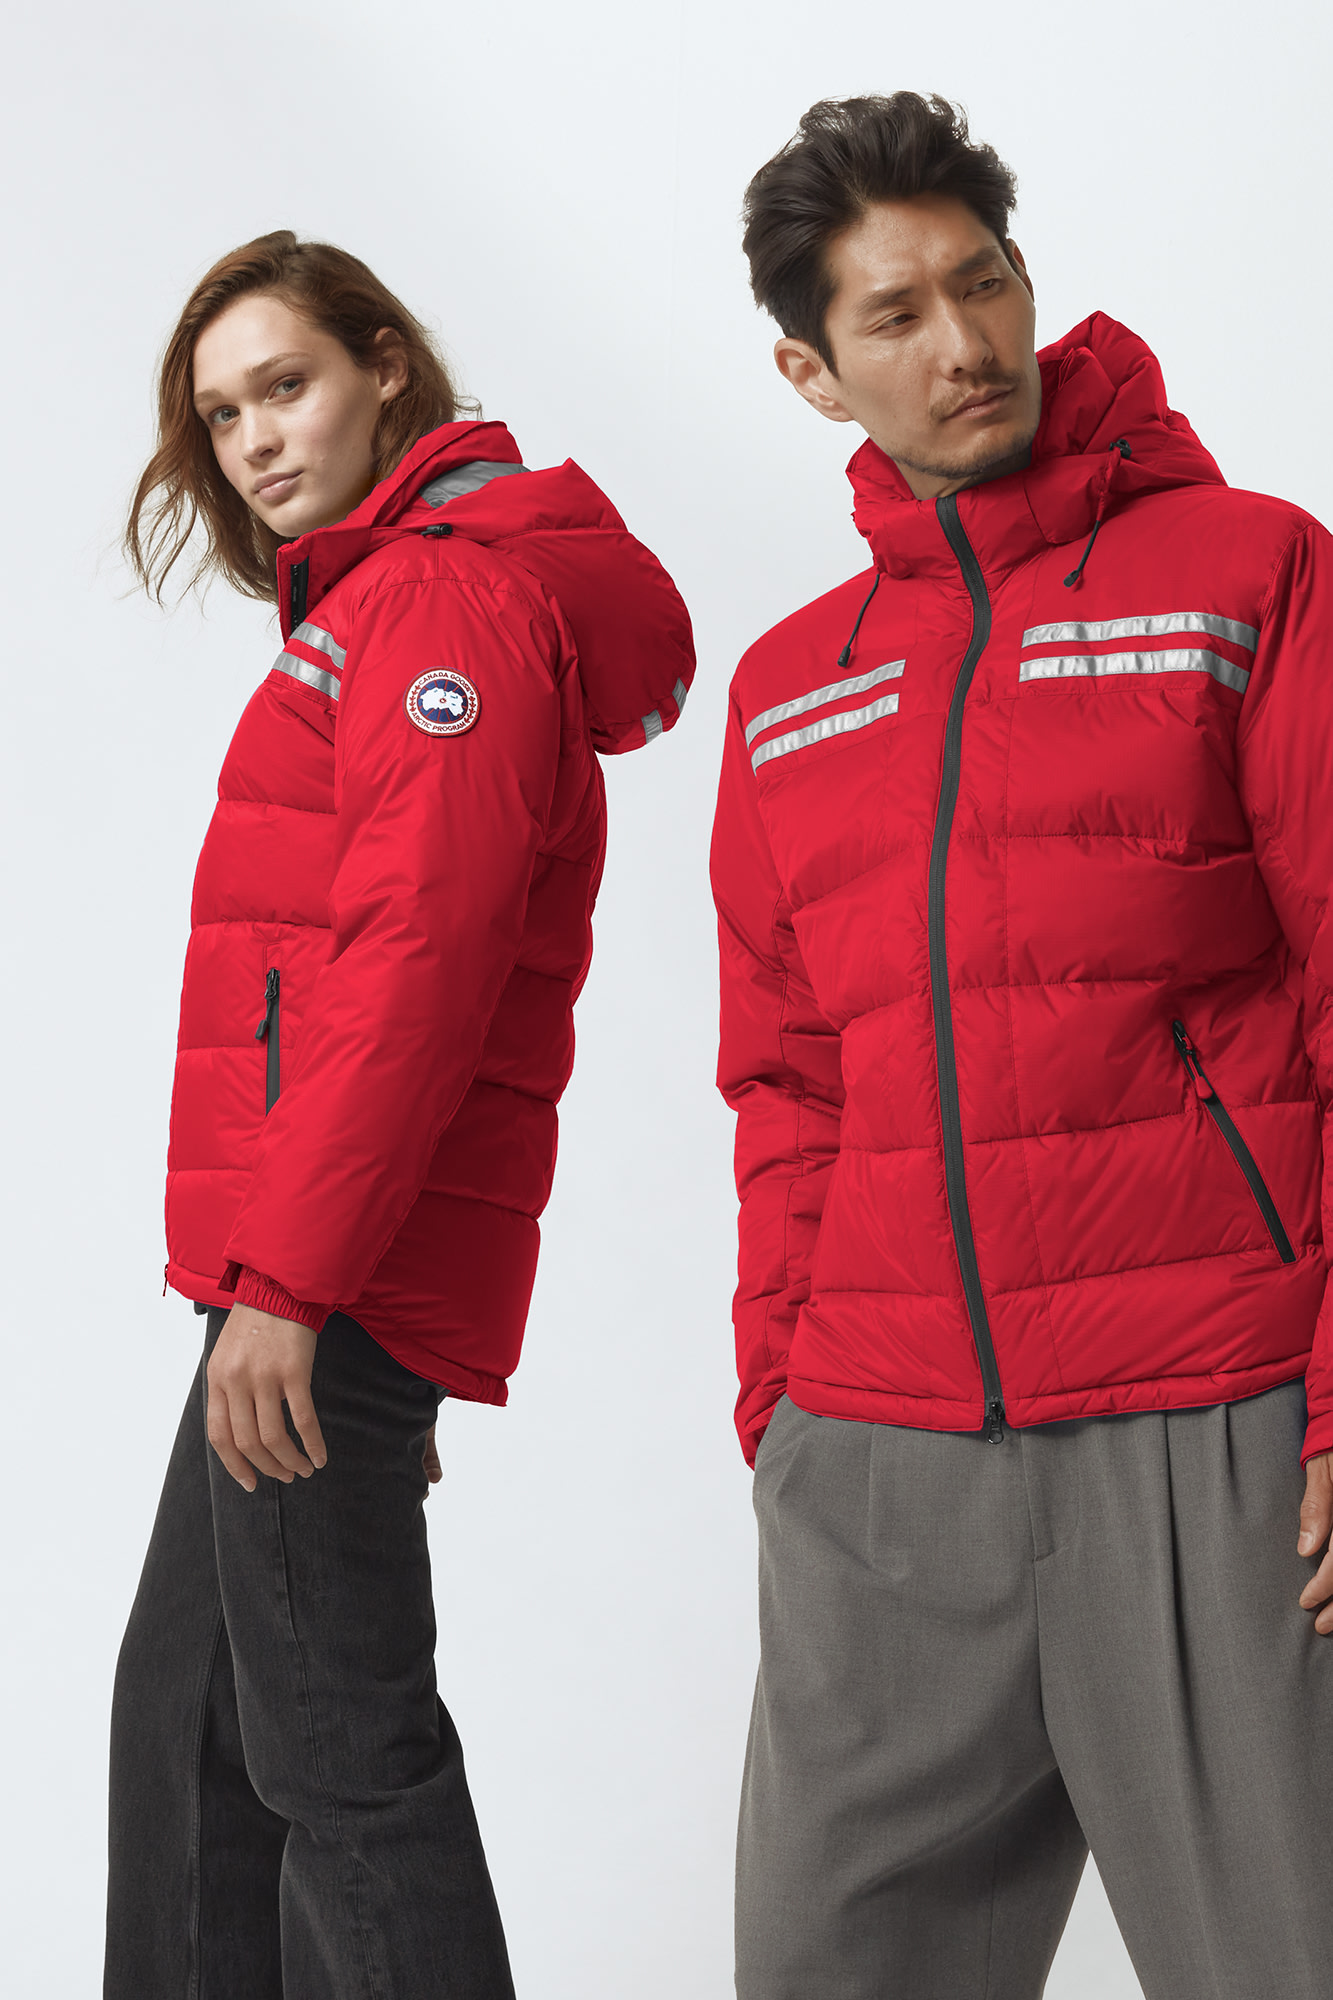 Canada Goose's Latest Jacket Looks Straight Out of 'Game of